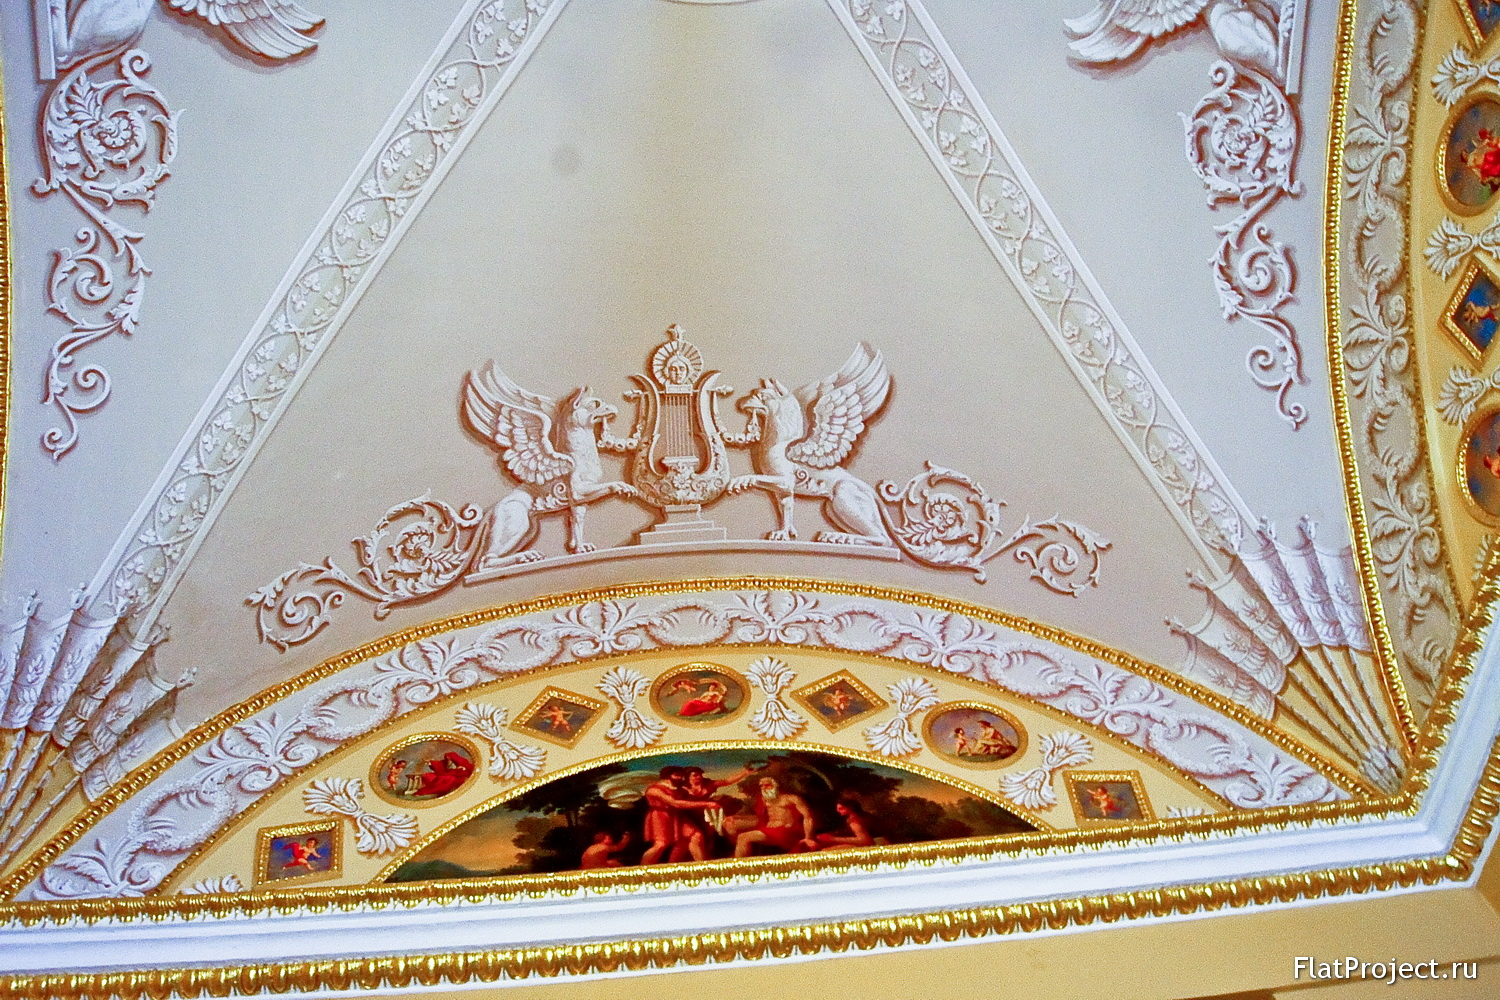 The Catherine Palace interiors – photo 28